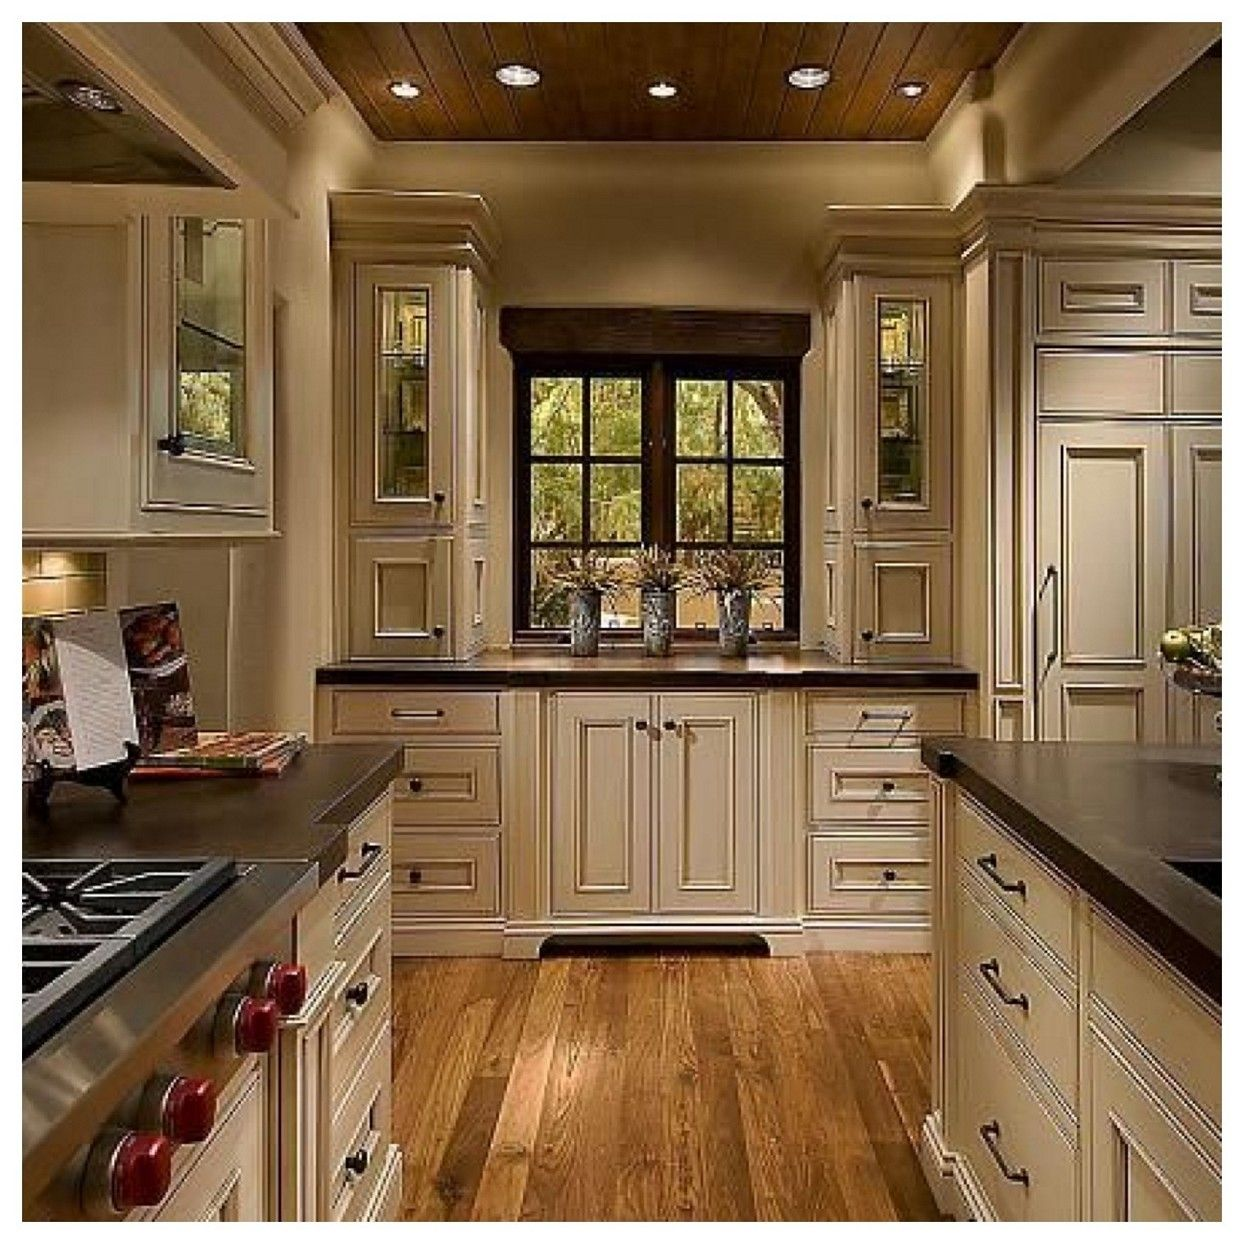 Kitchen Cabinets With Light Wood Floors Country Kitchen Designs Cherry Cabinets Kitchen Kitchen Design